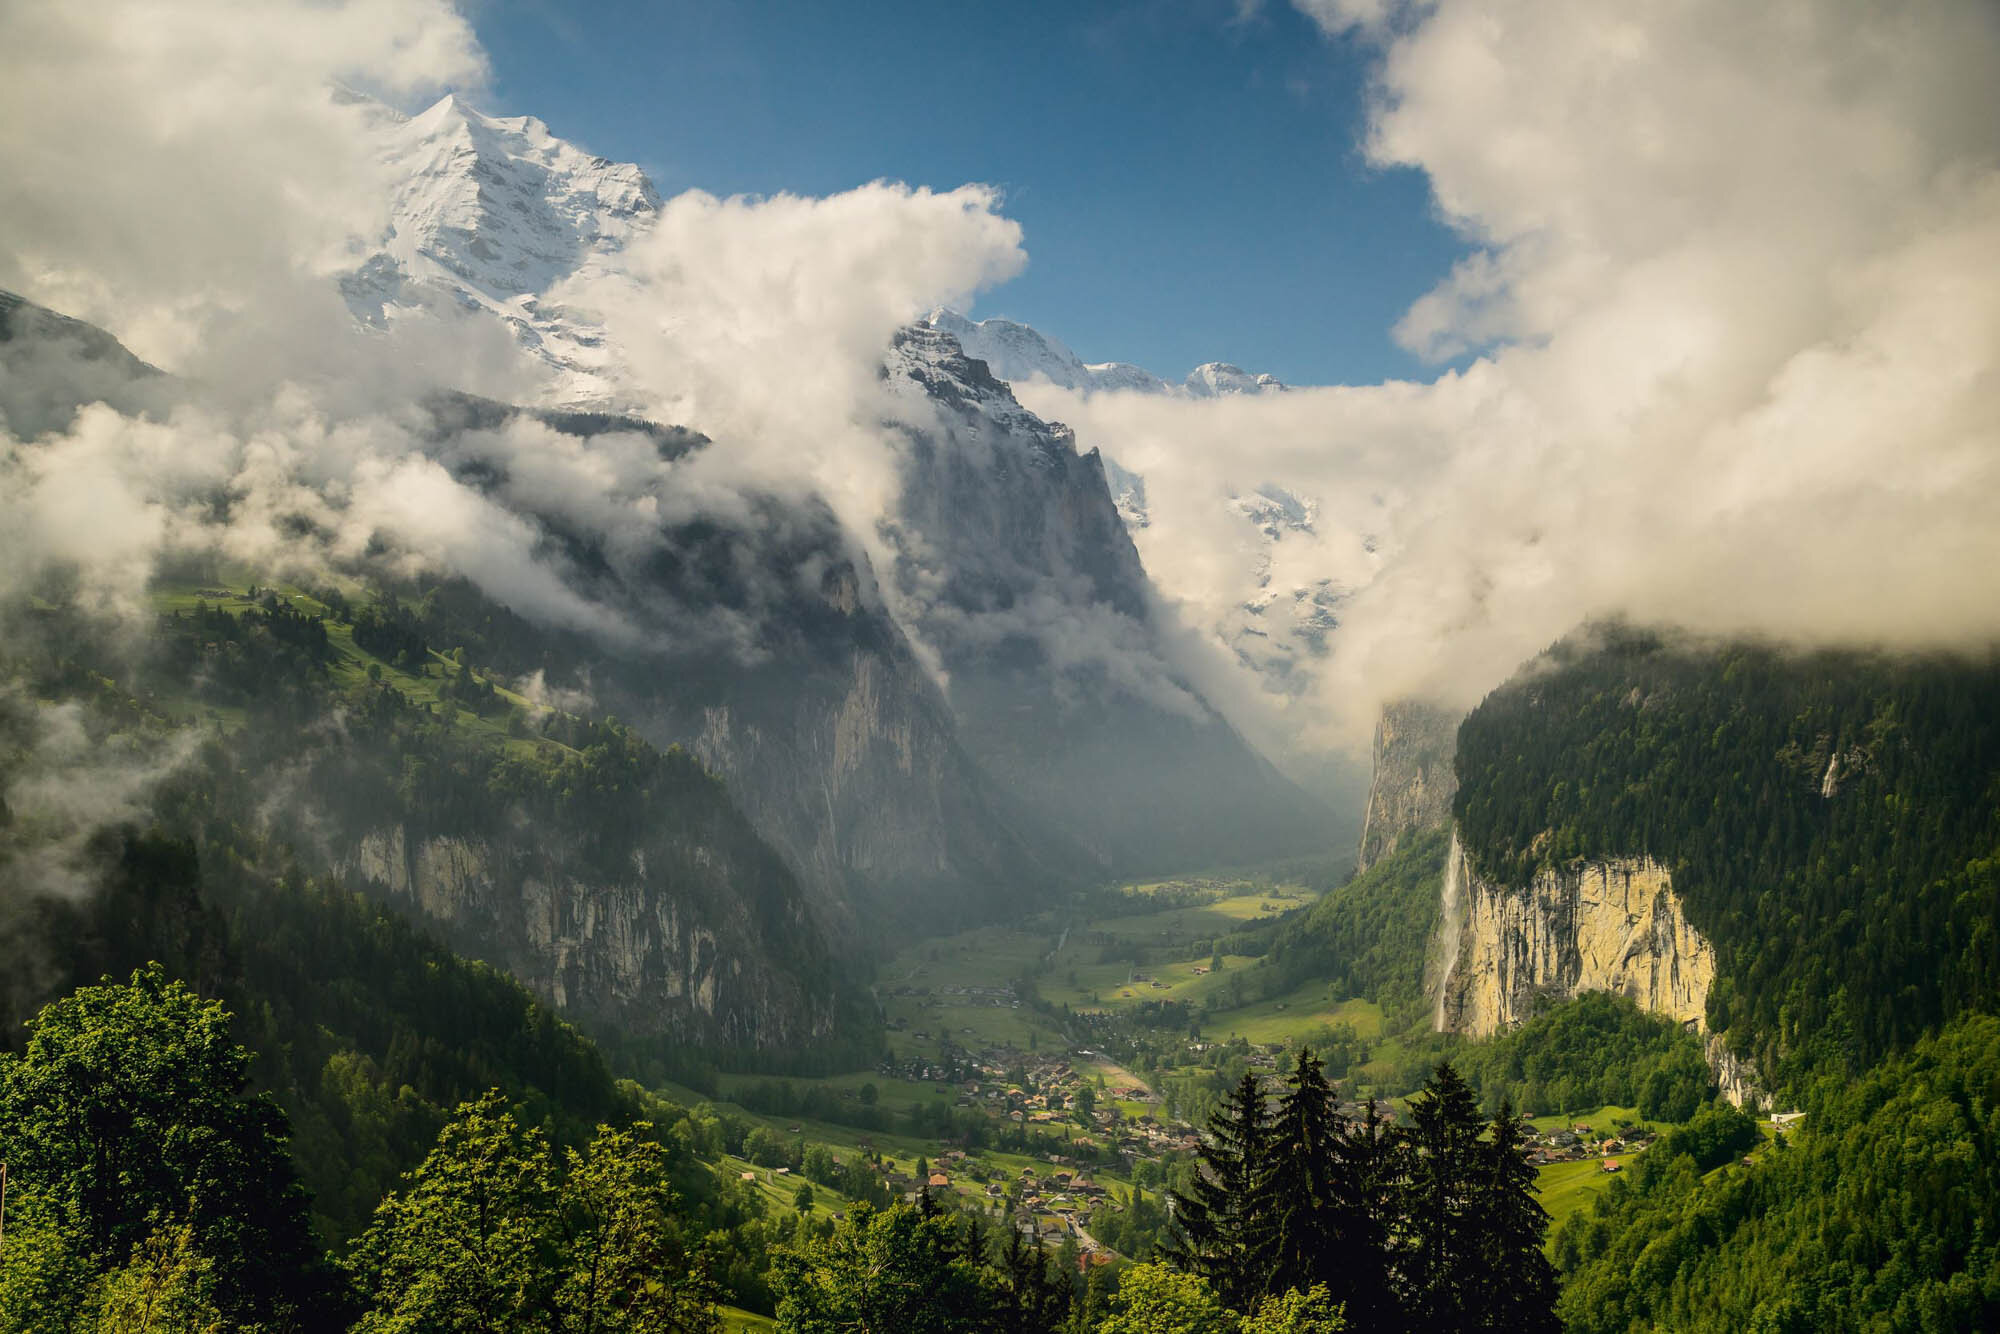 Lauterbrunnen is situated in one of the most impressive trough valleys of the Alps, between gigantic rockfaces and summits. On the right the Staubbach falls. Copyright by: Switzerland Tourism